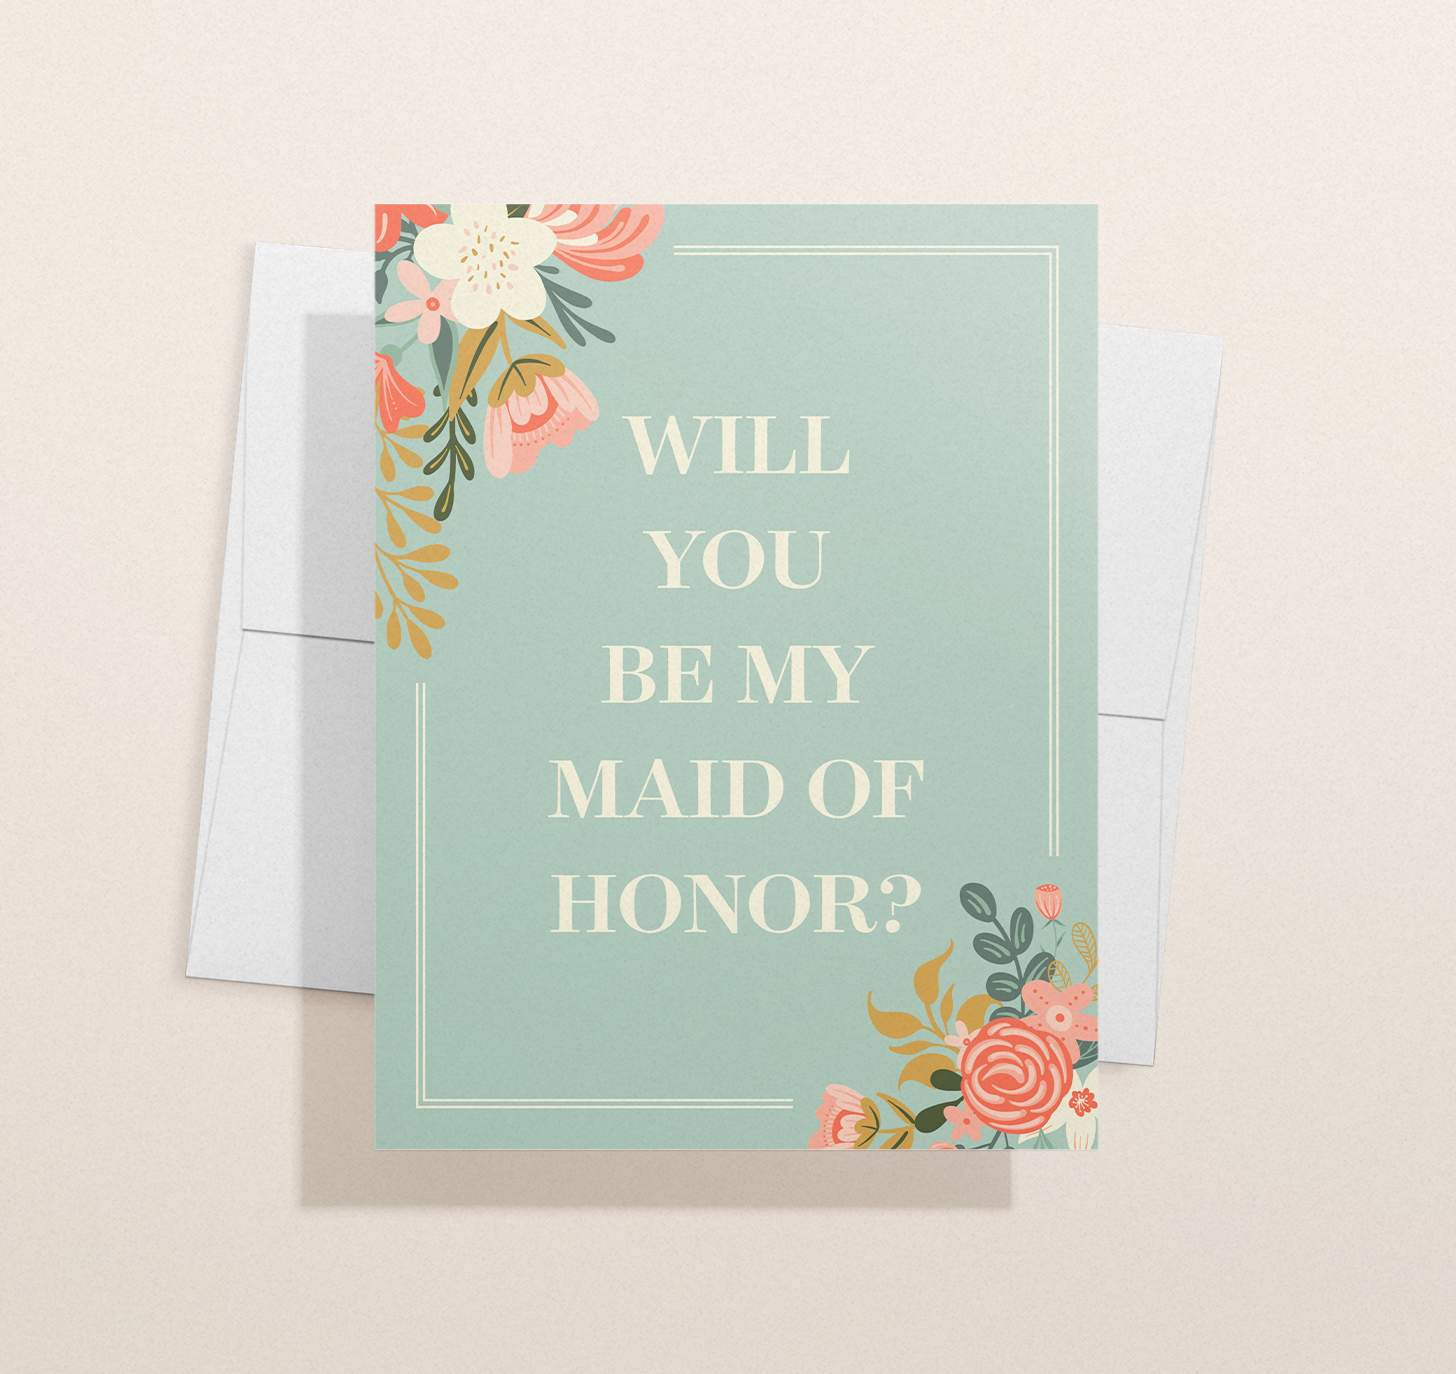 Green card with pink and white flowers design with envelope